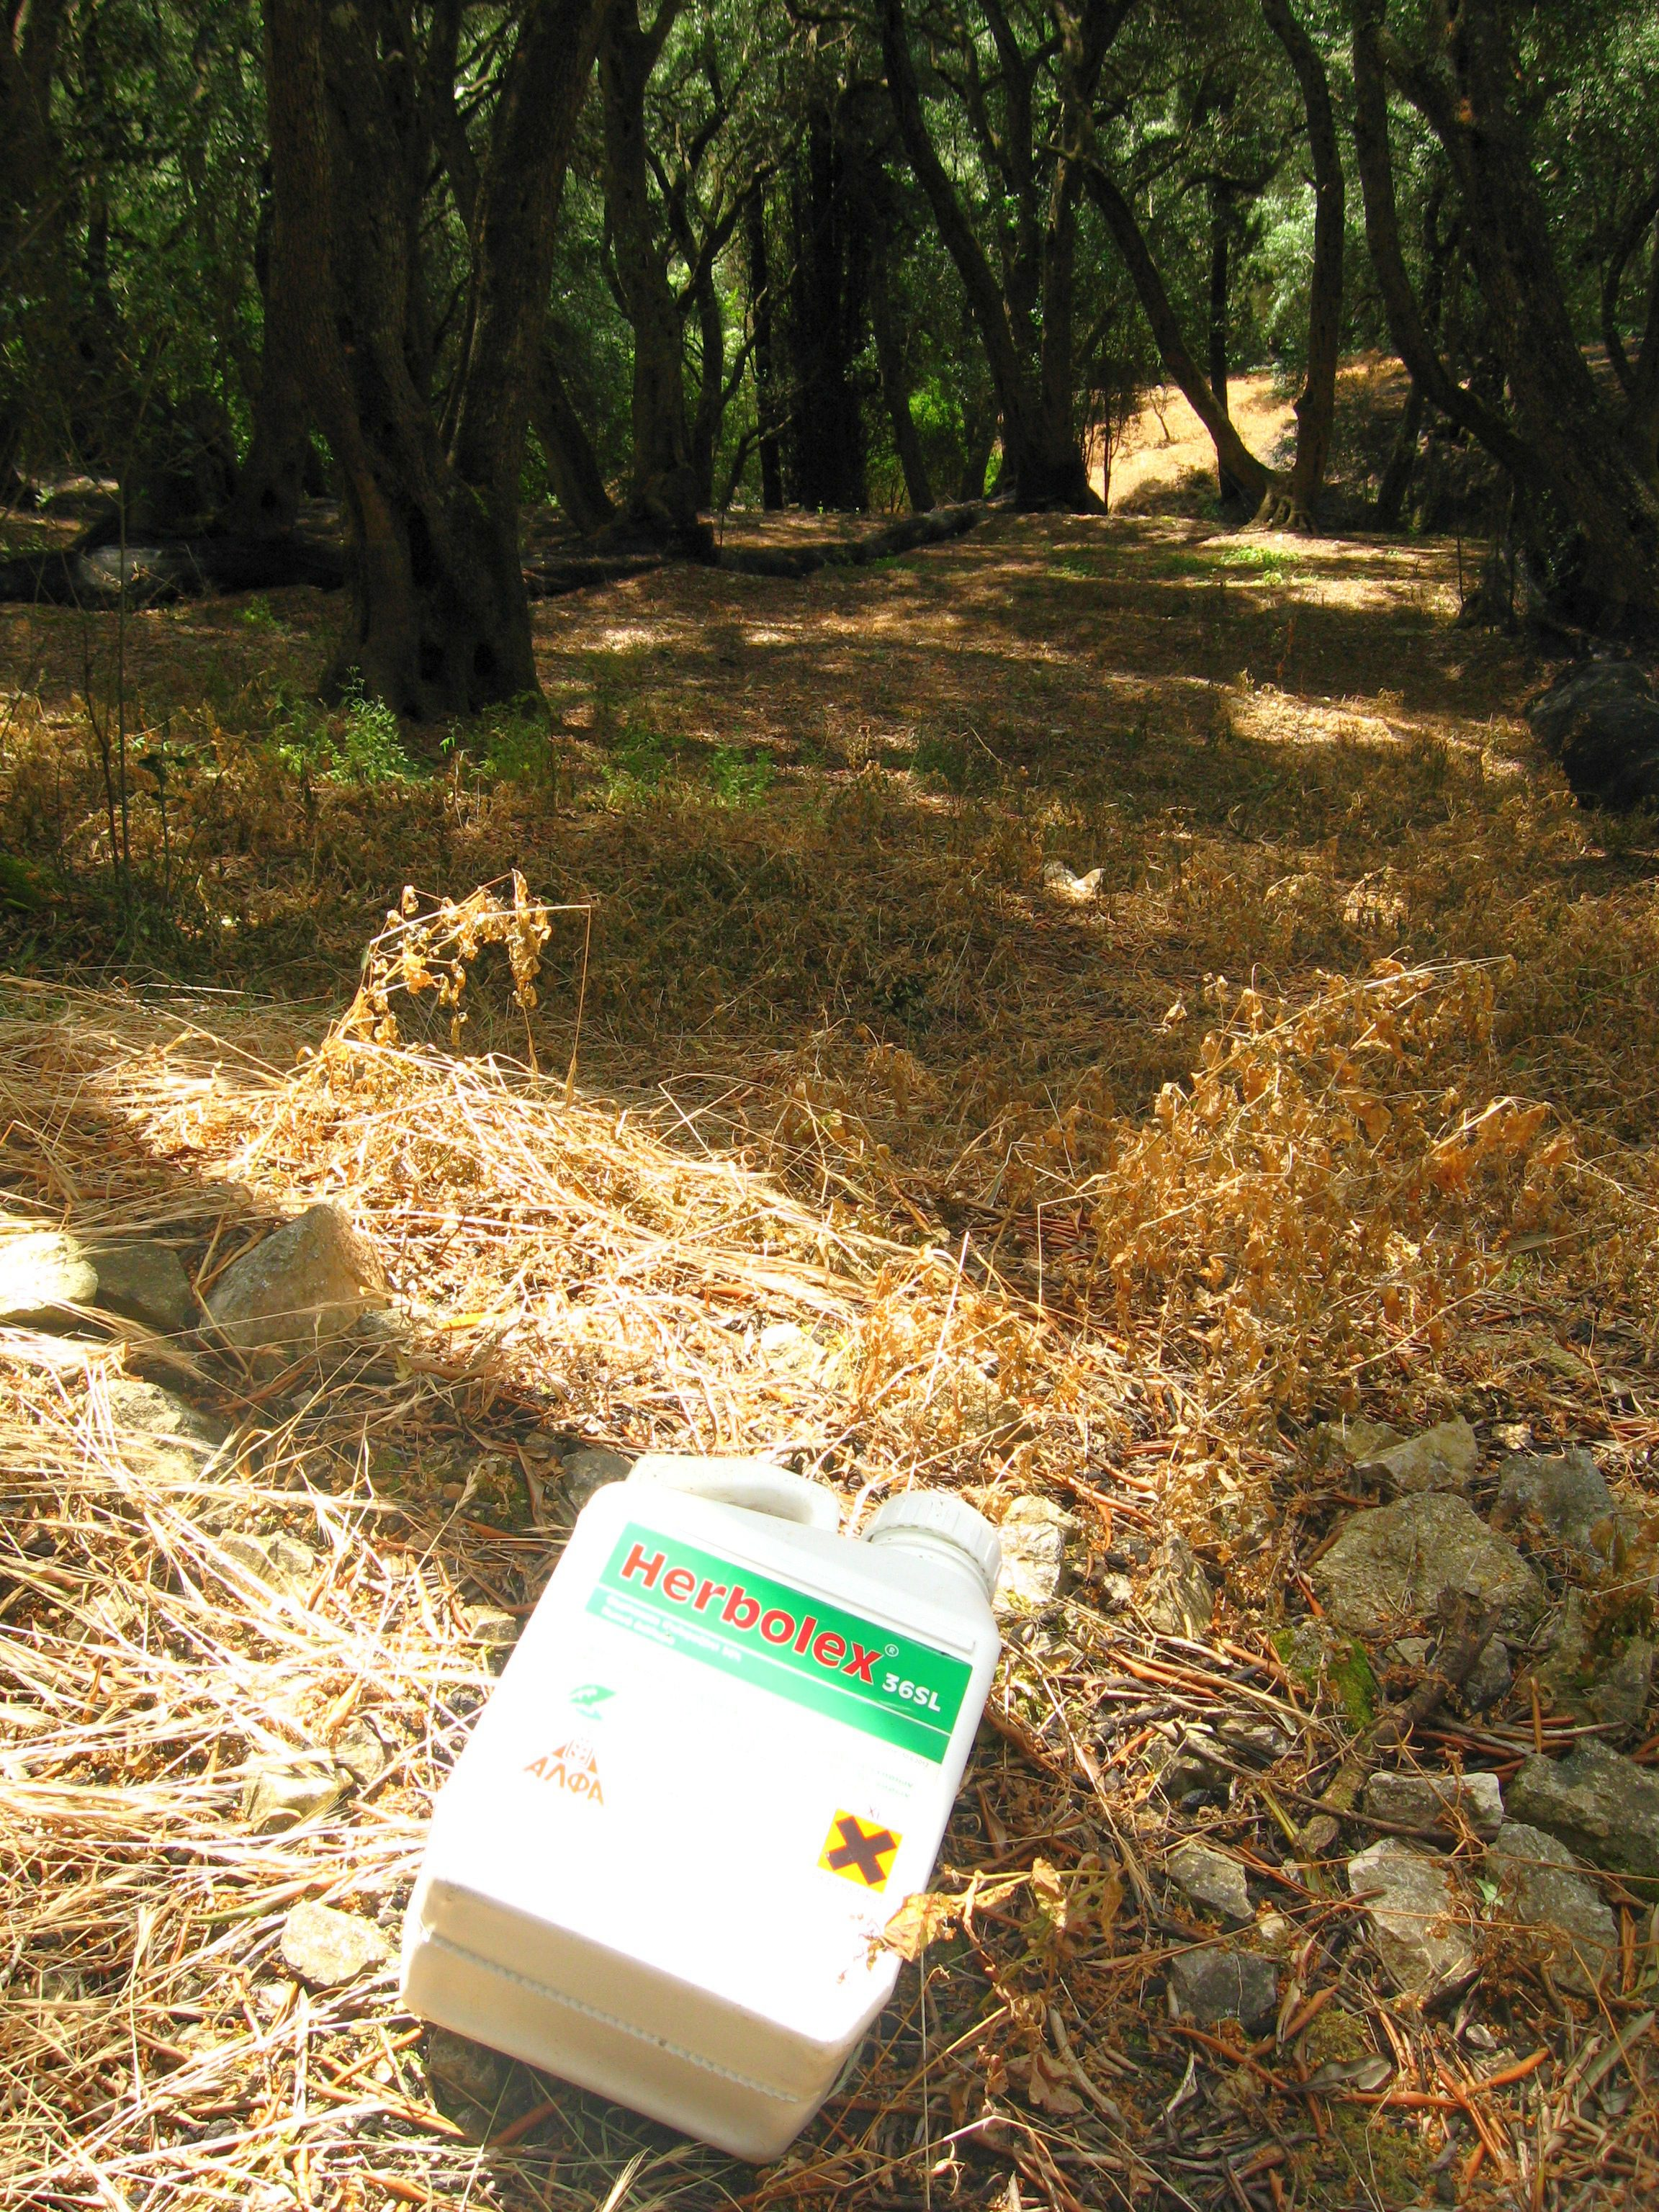 Empty_Glyphosate_(Herbolex)_container_discarded_in_Corfu_olive_grove